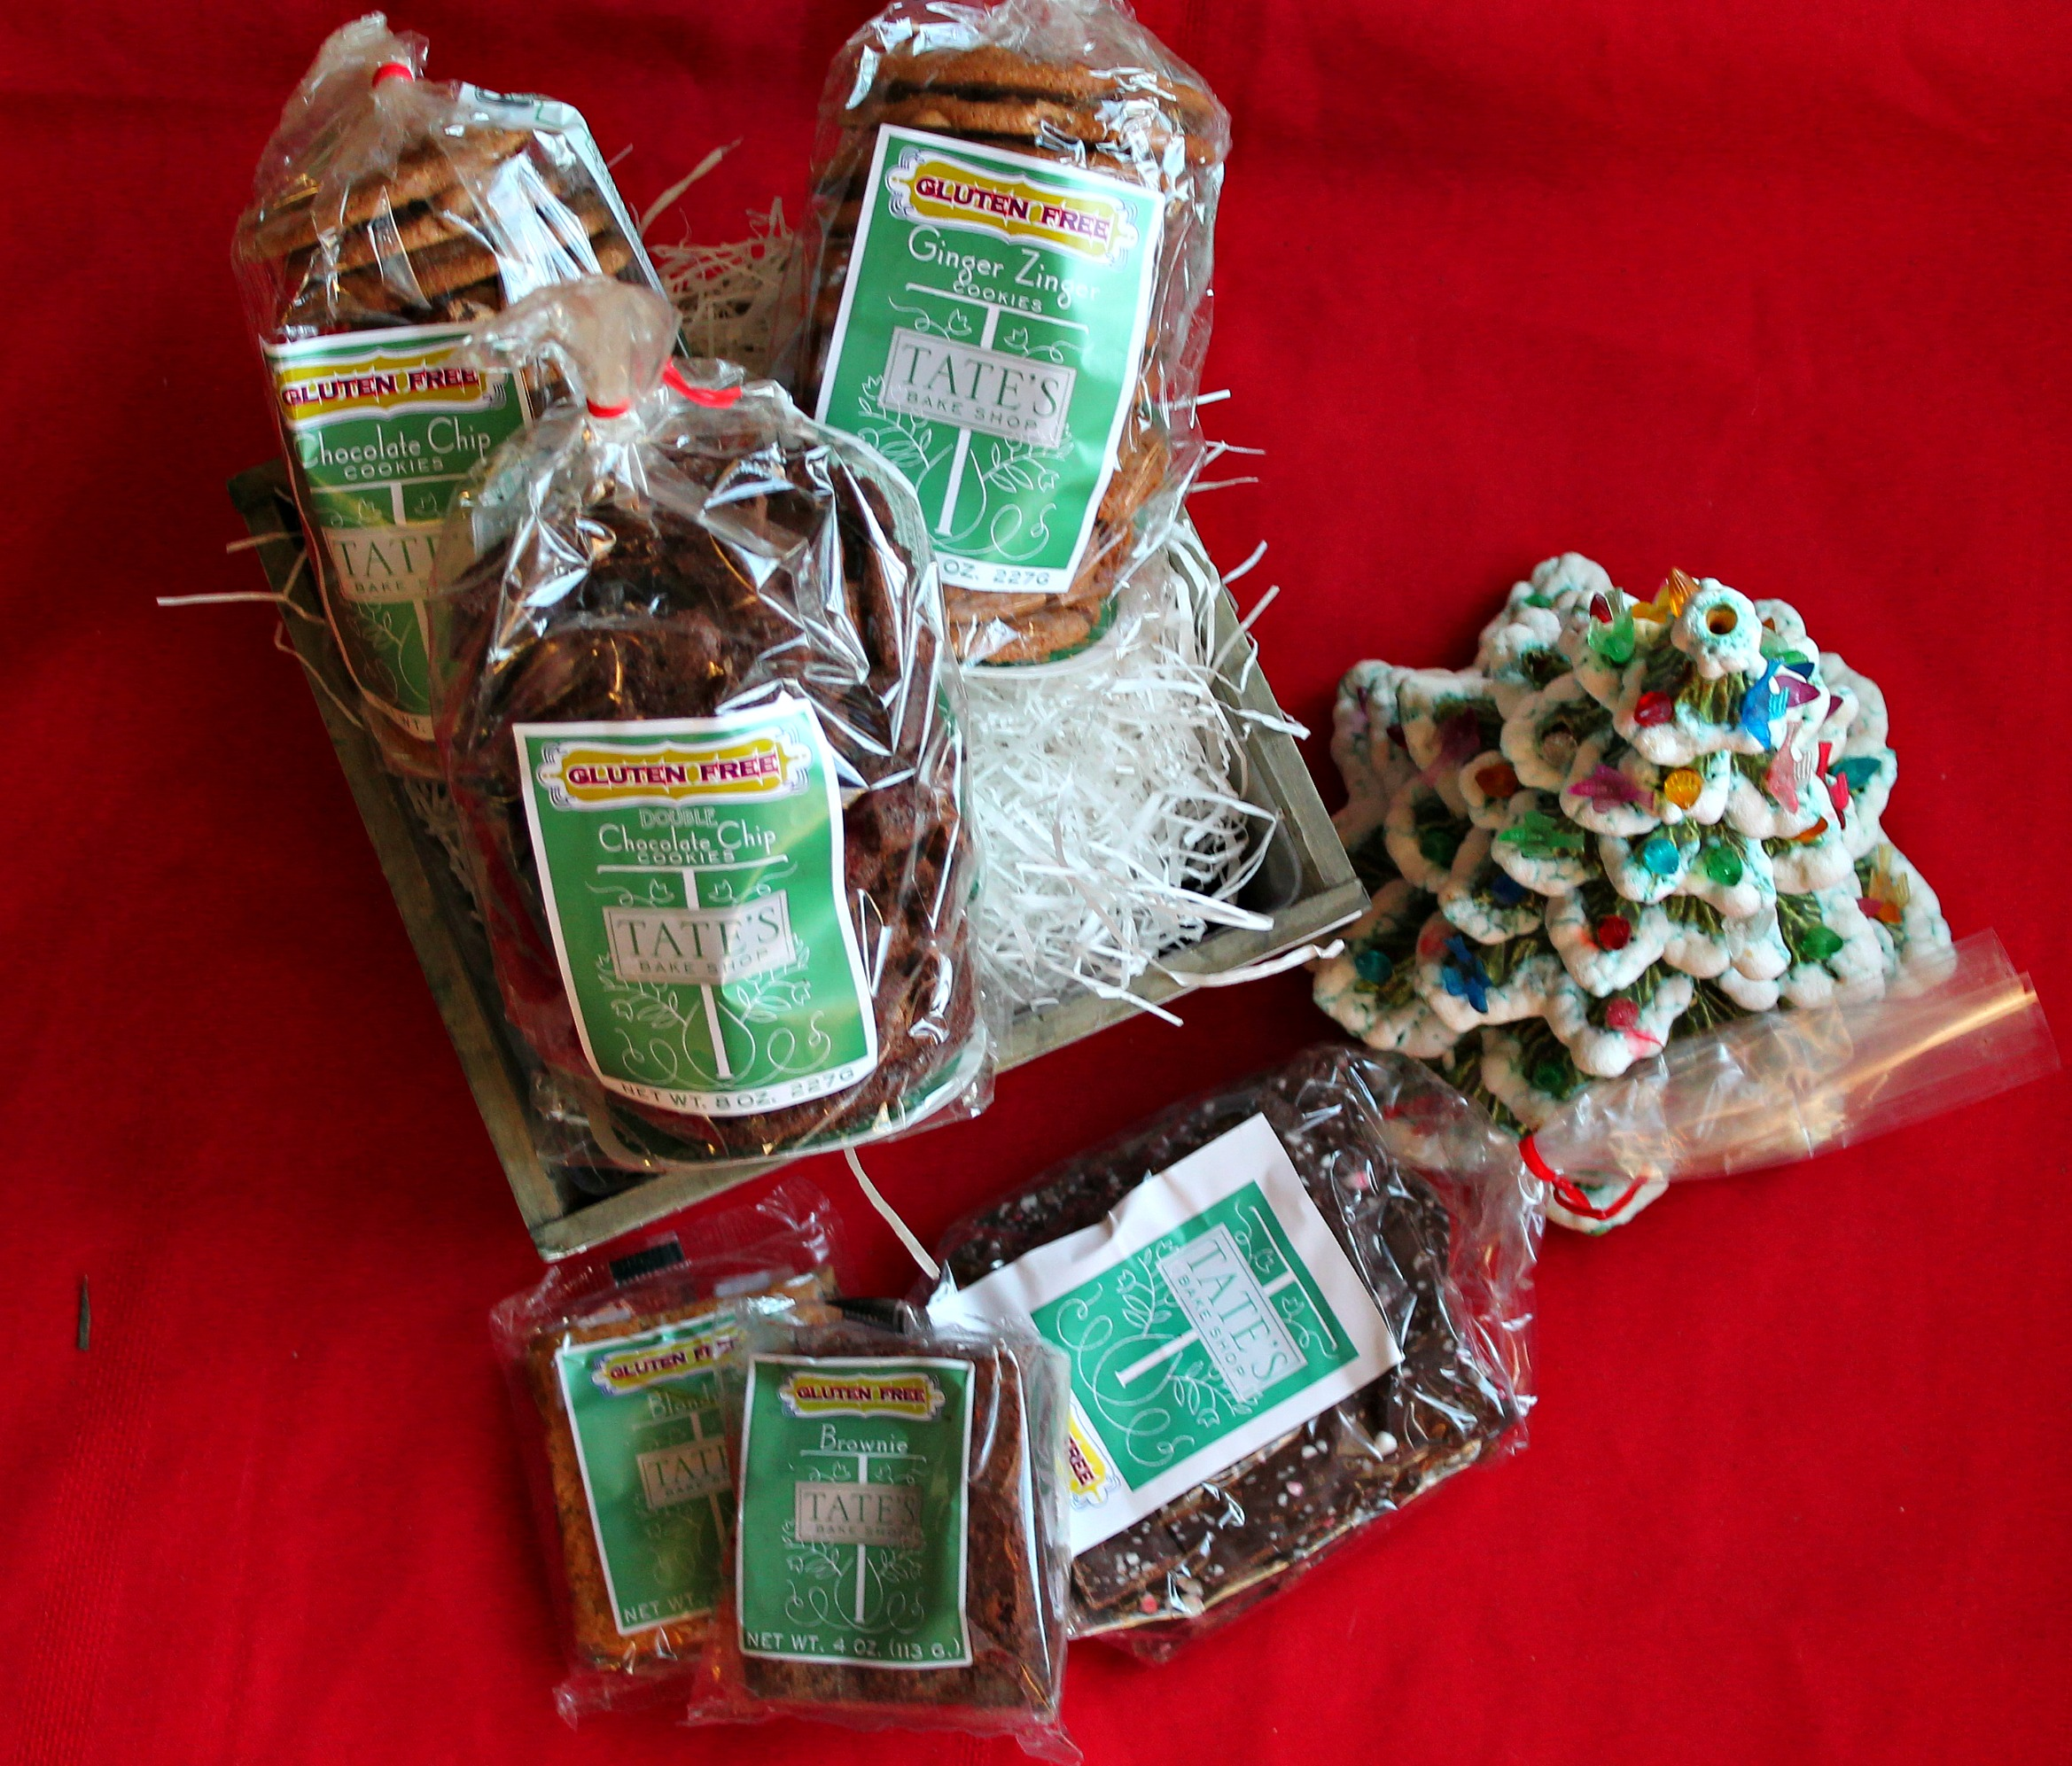 Gluten free goodies with tates bake shop giveaway simply tates gluten free entire gift basket negle